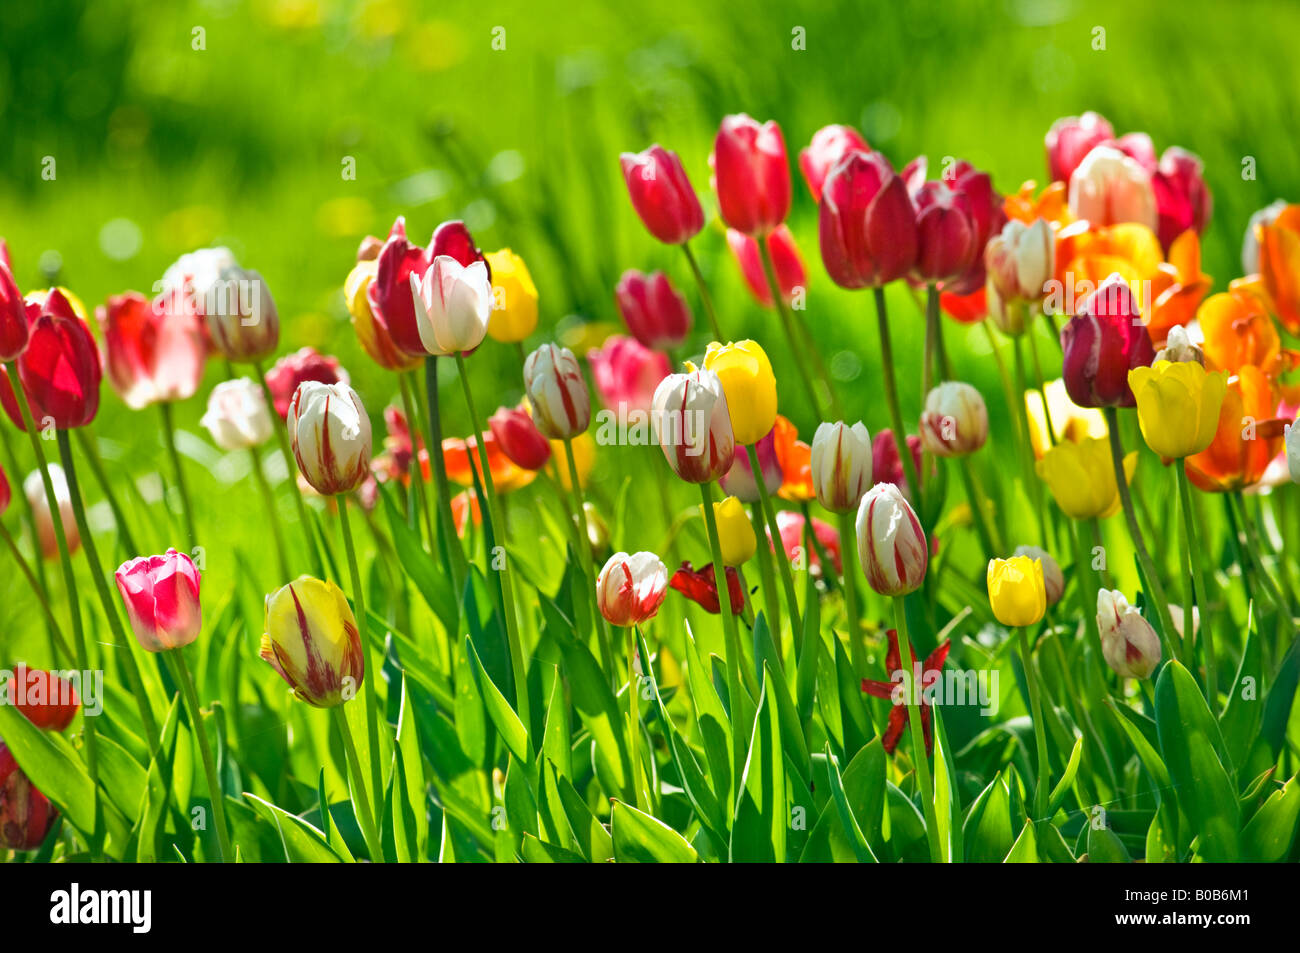 Tulip field flower garden flowers springtime spring plant plants tulip field flower garden flowers springtime spring plant plants green yellow blue red mightylinksfo